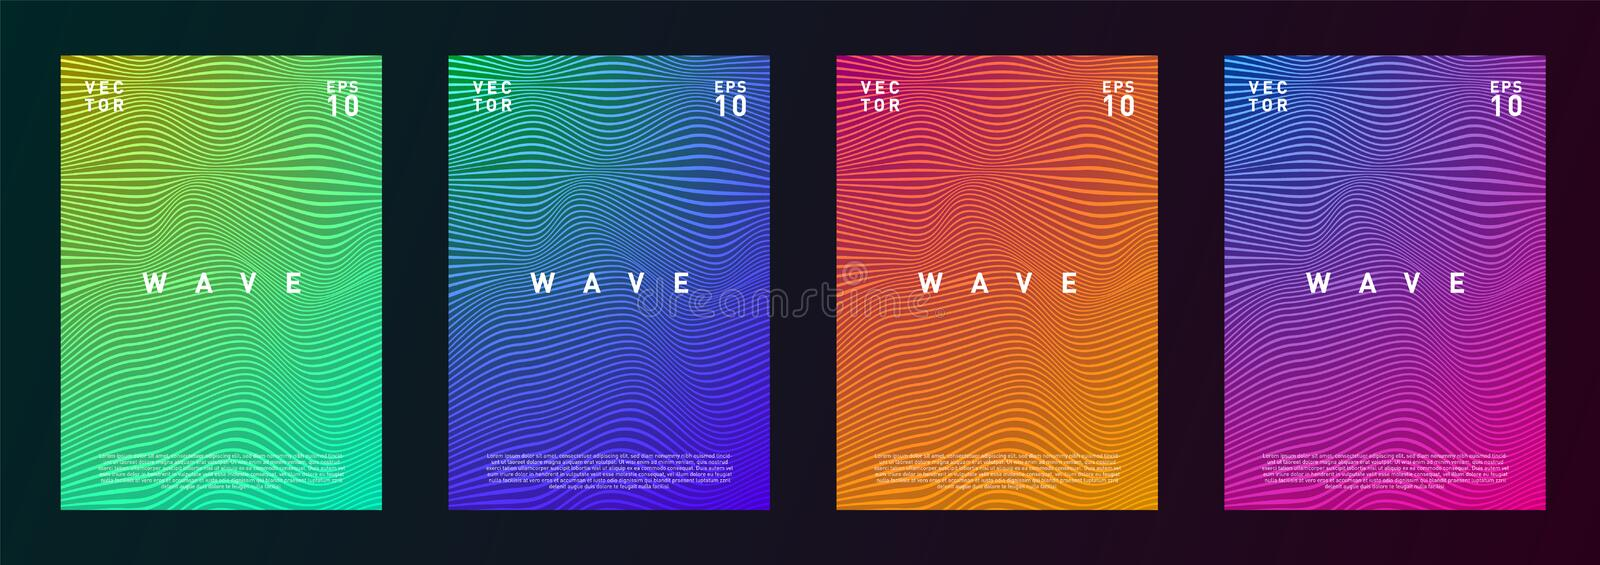 Set of wave lines gradient texture fluid background design for advertising, journal, flyer, poster, brochure, covers in stock illustration